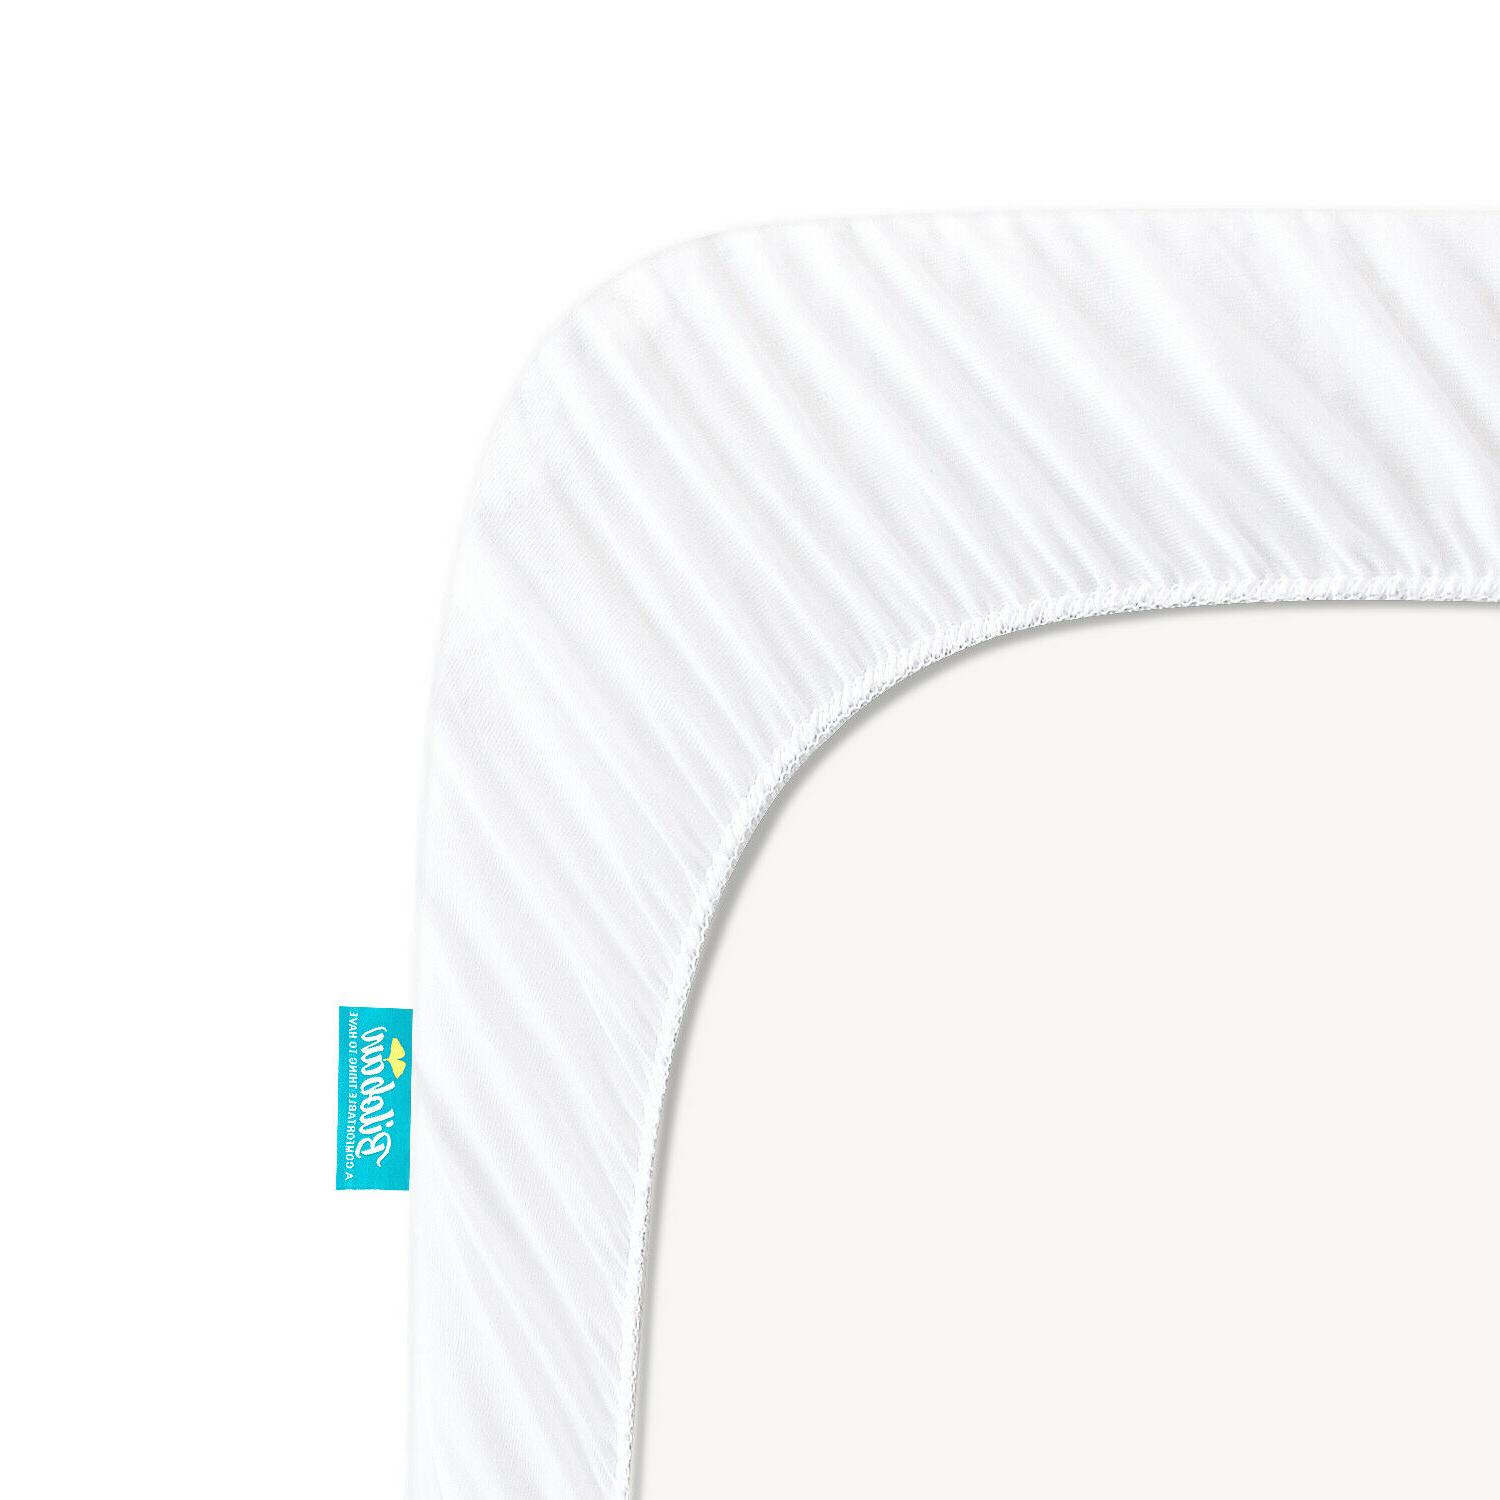 Standard Crib for Baby Ultra Covers 2